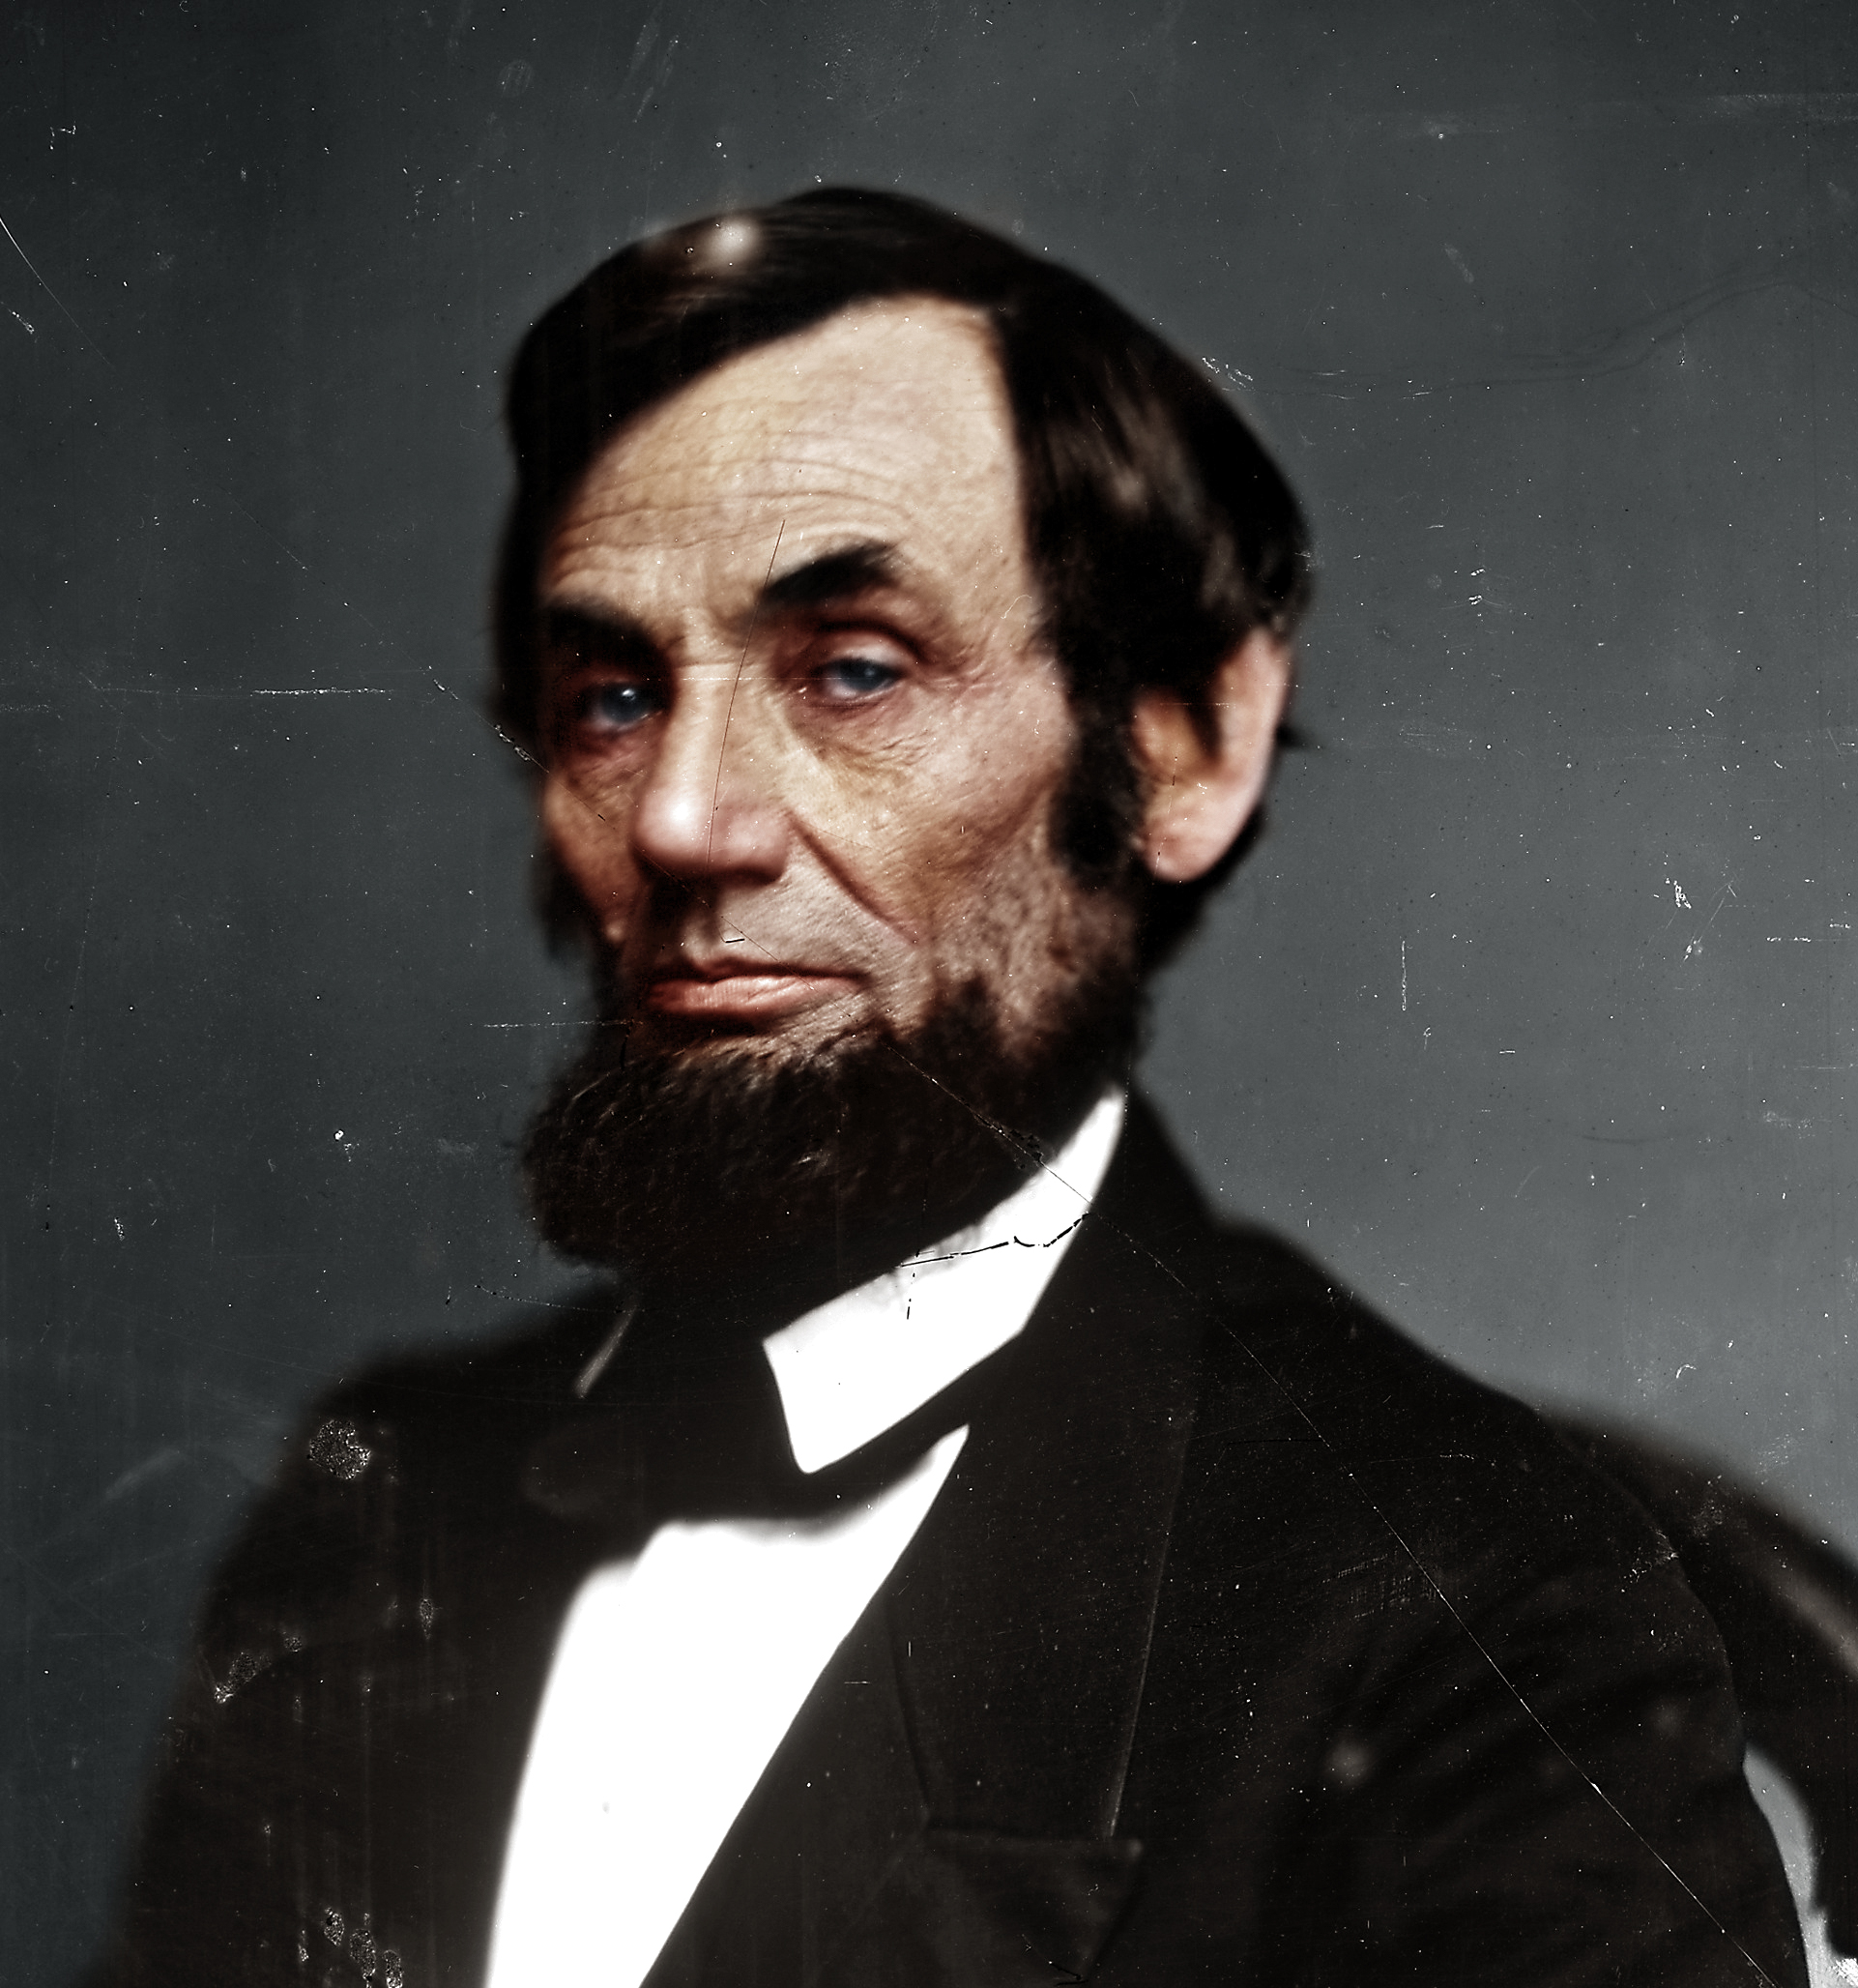 Abraham Lincoln wallpaper hd Download HD Wallpapers 1922x2056